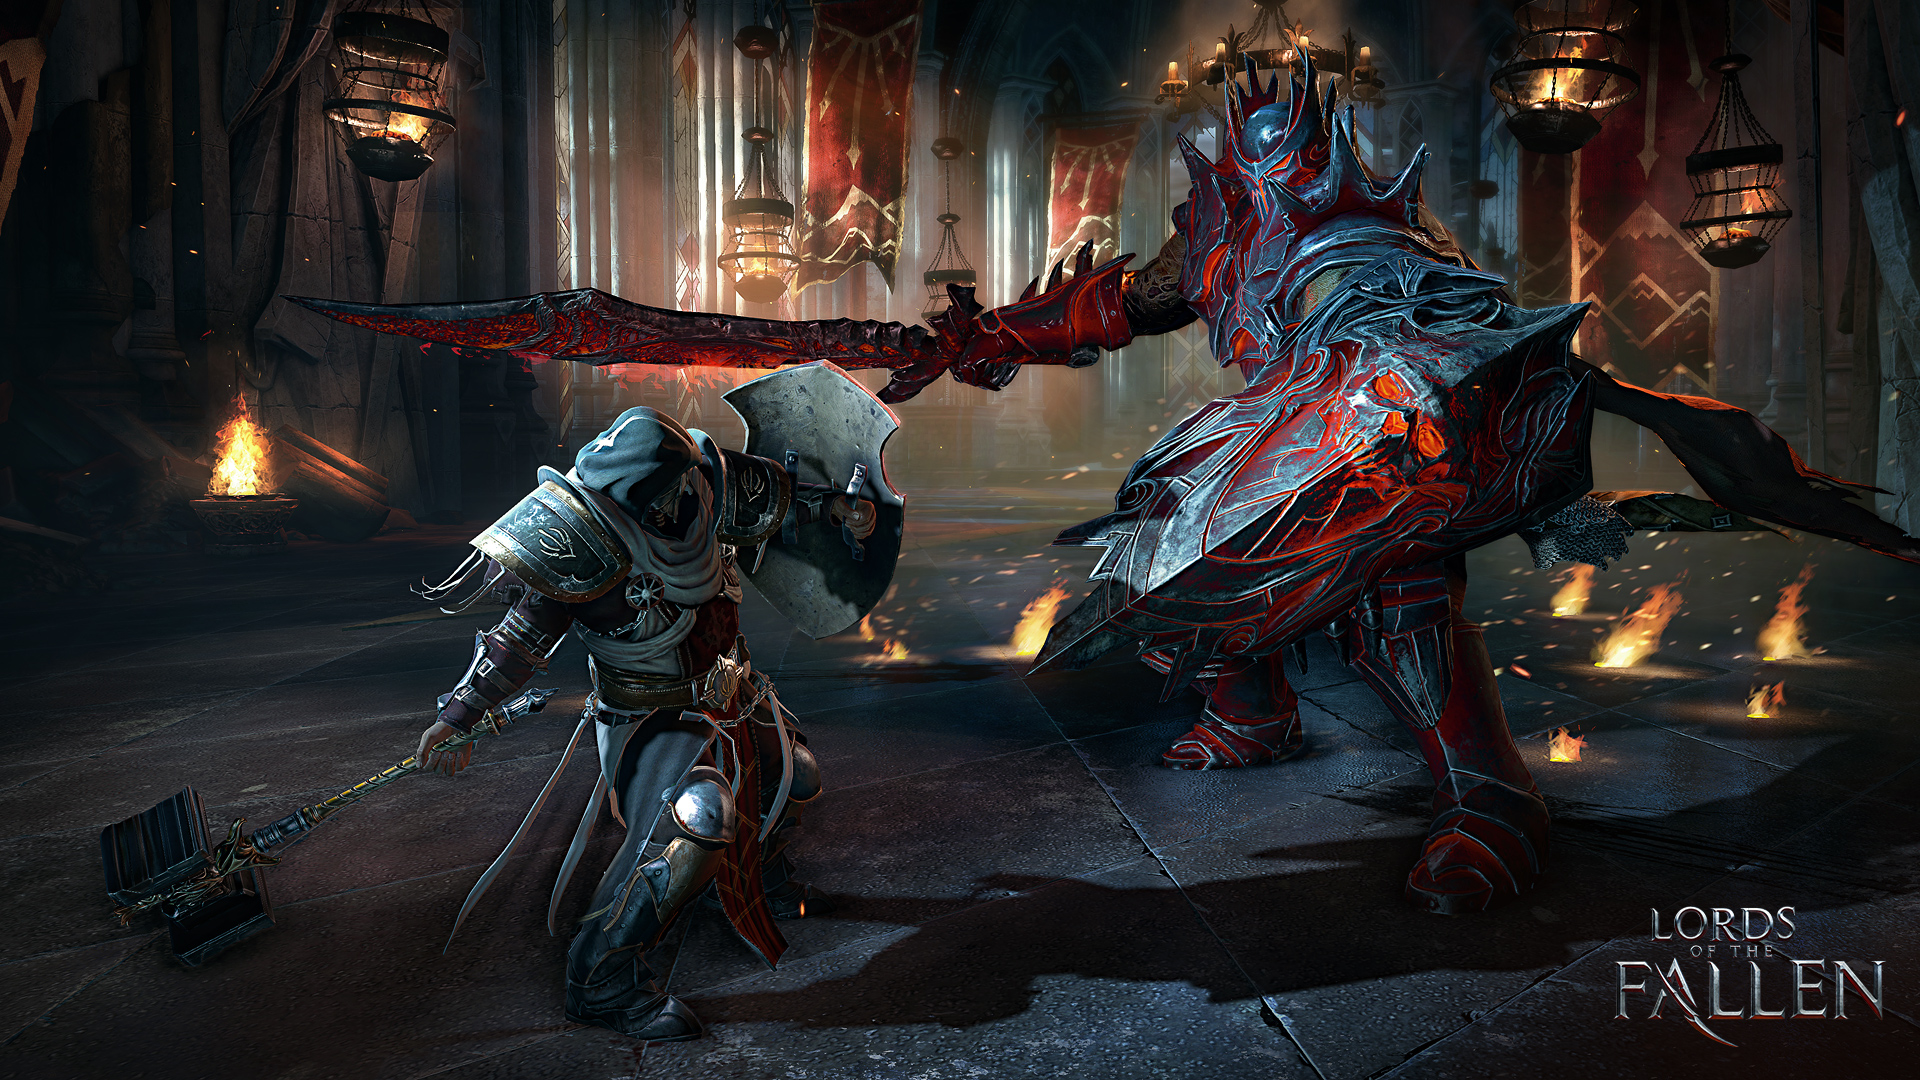 Lords, Fallen, Lords of the Fallen, Harkyn, Armor, Knight, Armored Knight, Game